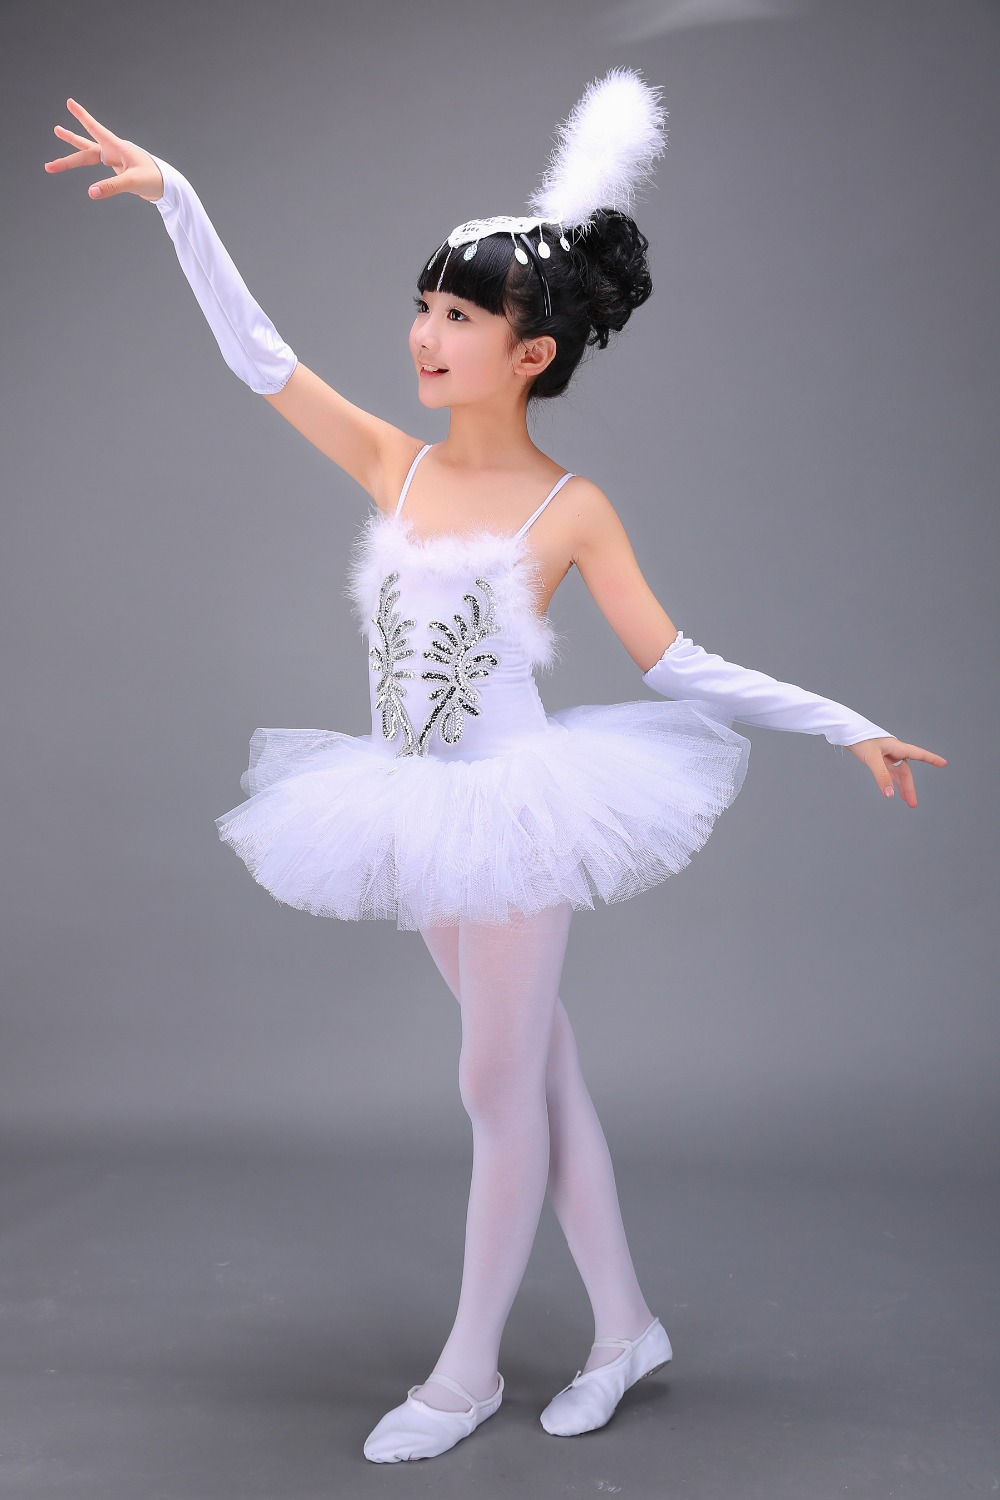 2-16Y-Child-White-Swan-Lake-Ballet-Costume-Girl-Dance-Dresses-Ballerina-Dress-Kids-Ballet-Dress (5)